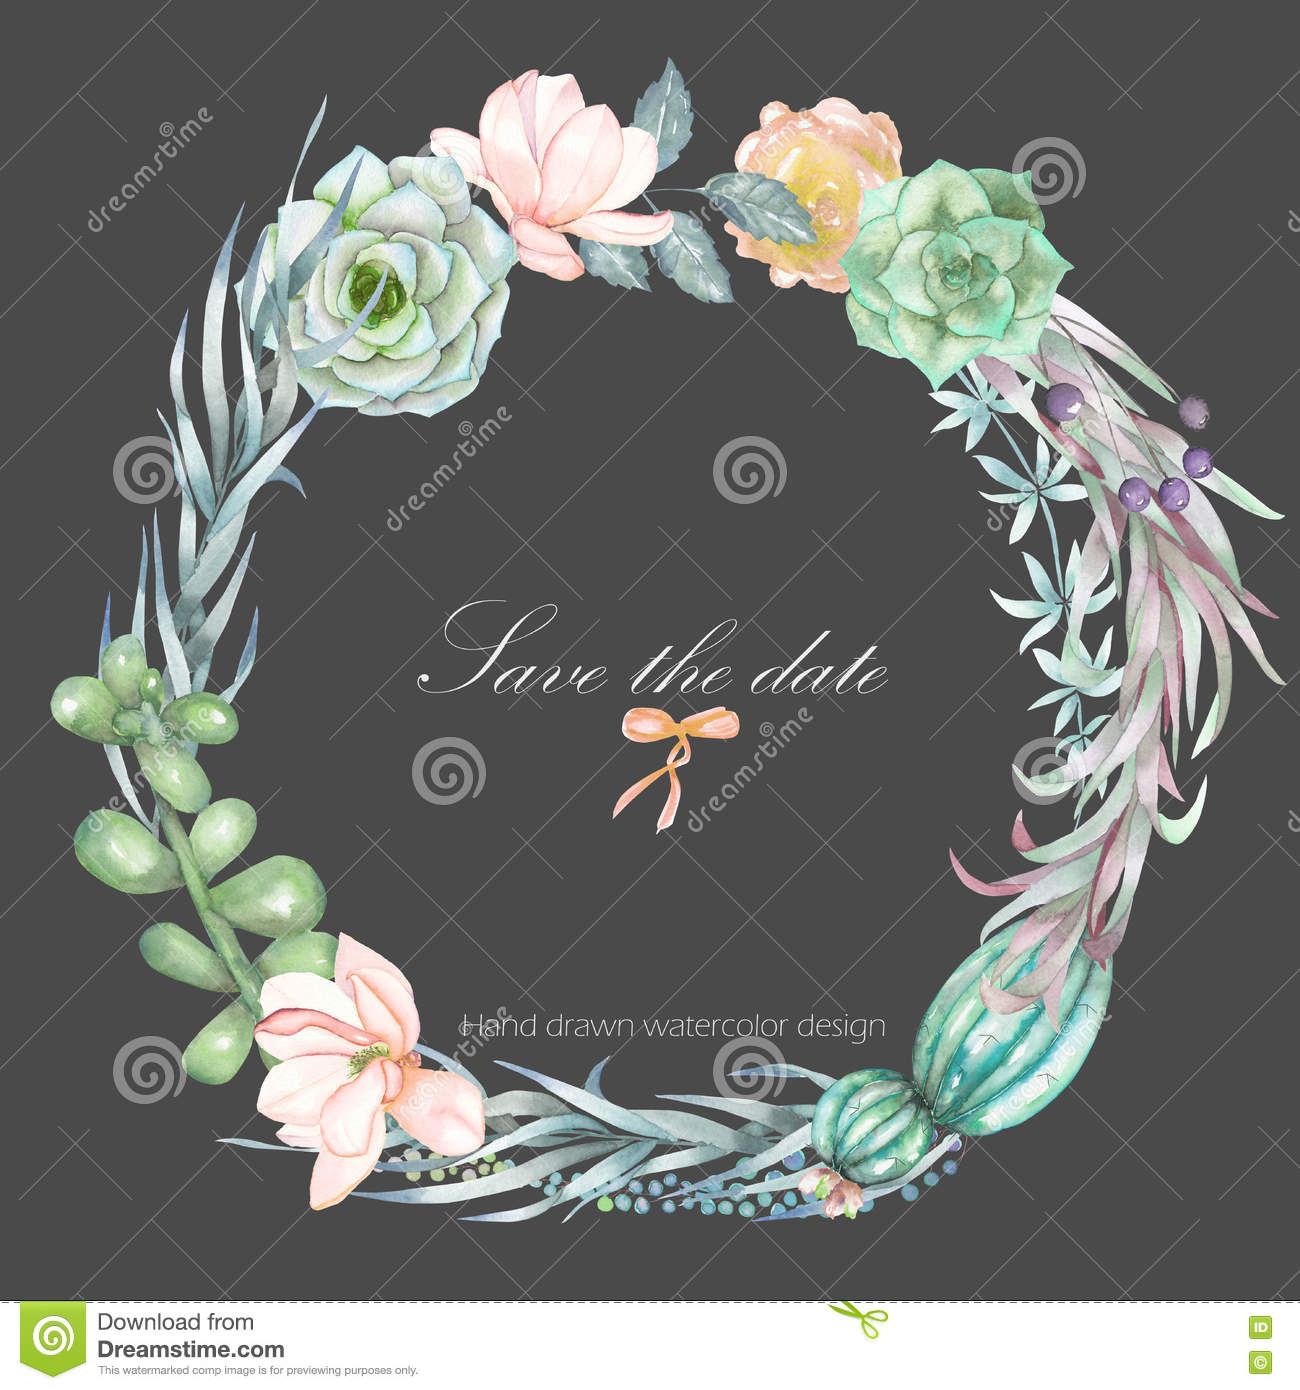 A Circle Frame Wreath Border With The Watercolor Flowers And Succulents Wedding Invitation Stock Photography